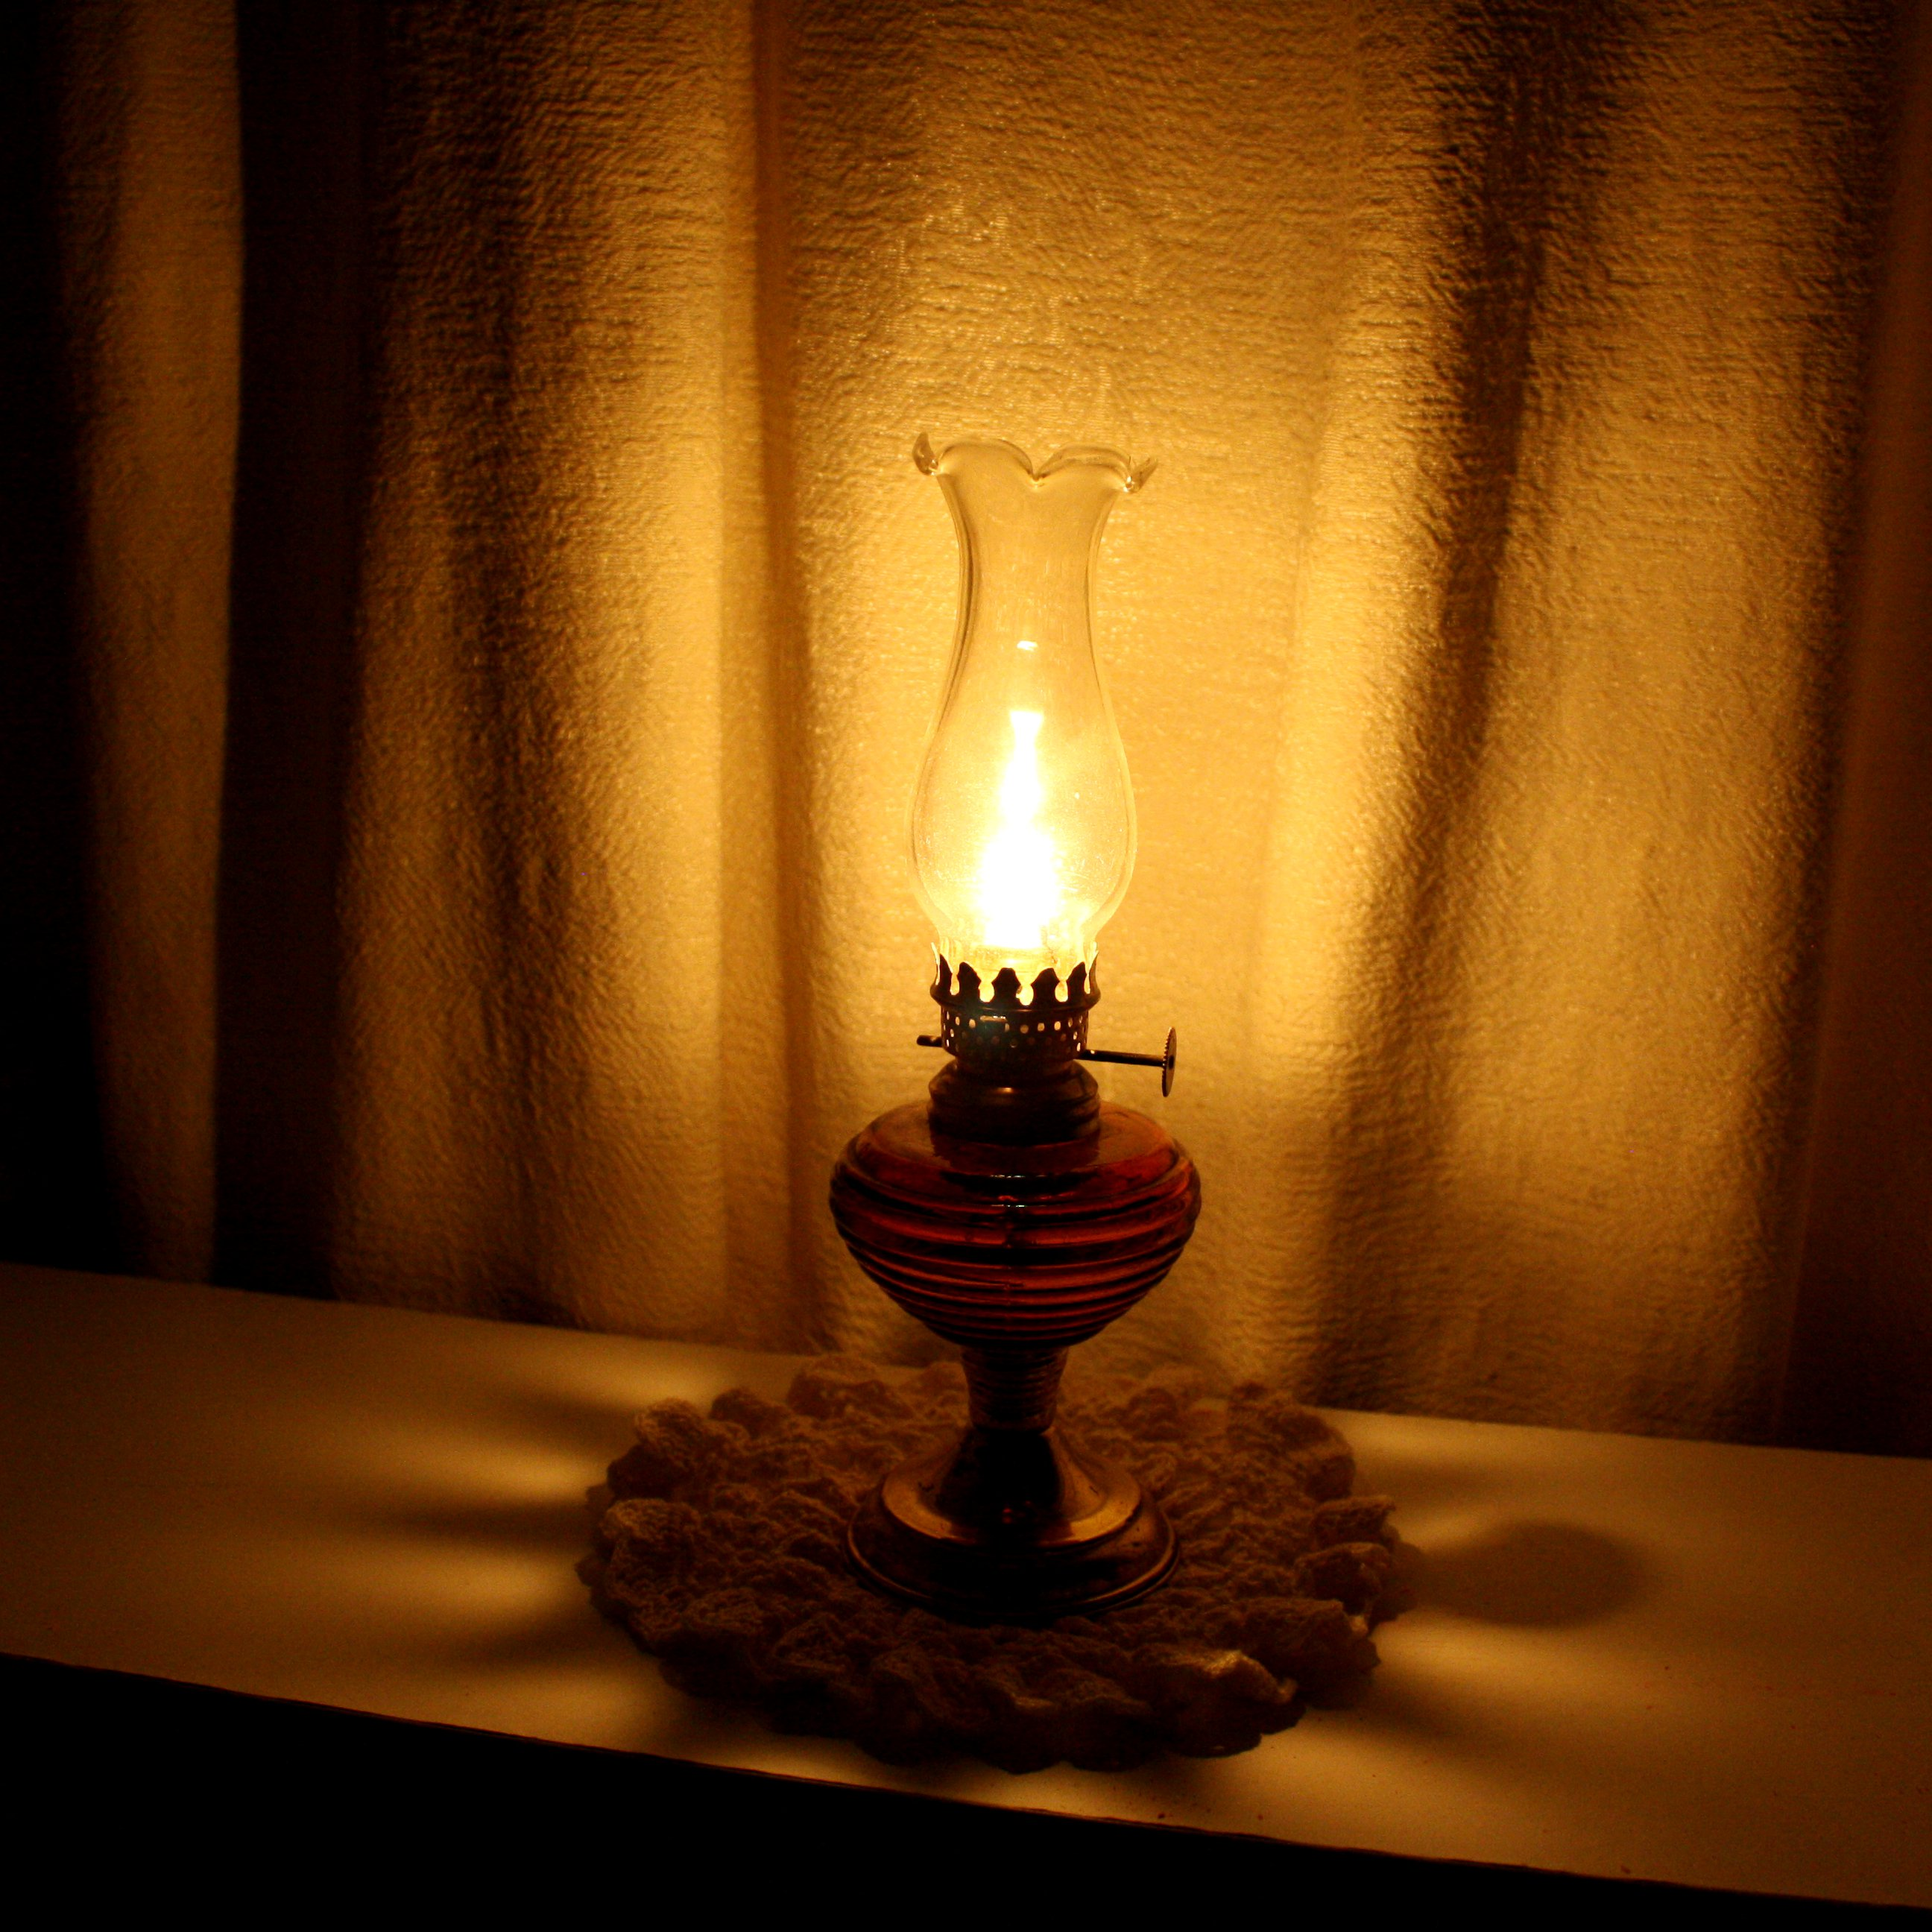 A guide on how to make Oil burning lamps | Warisan Lighting